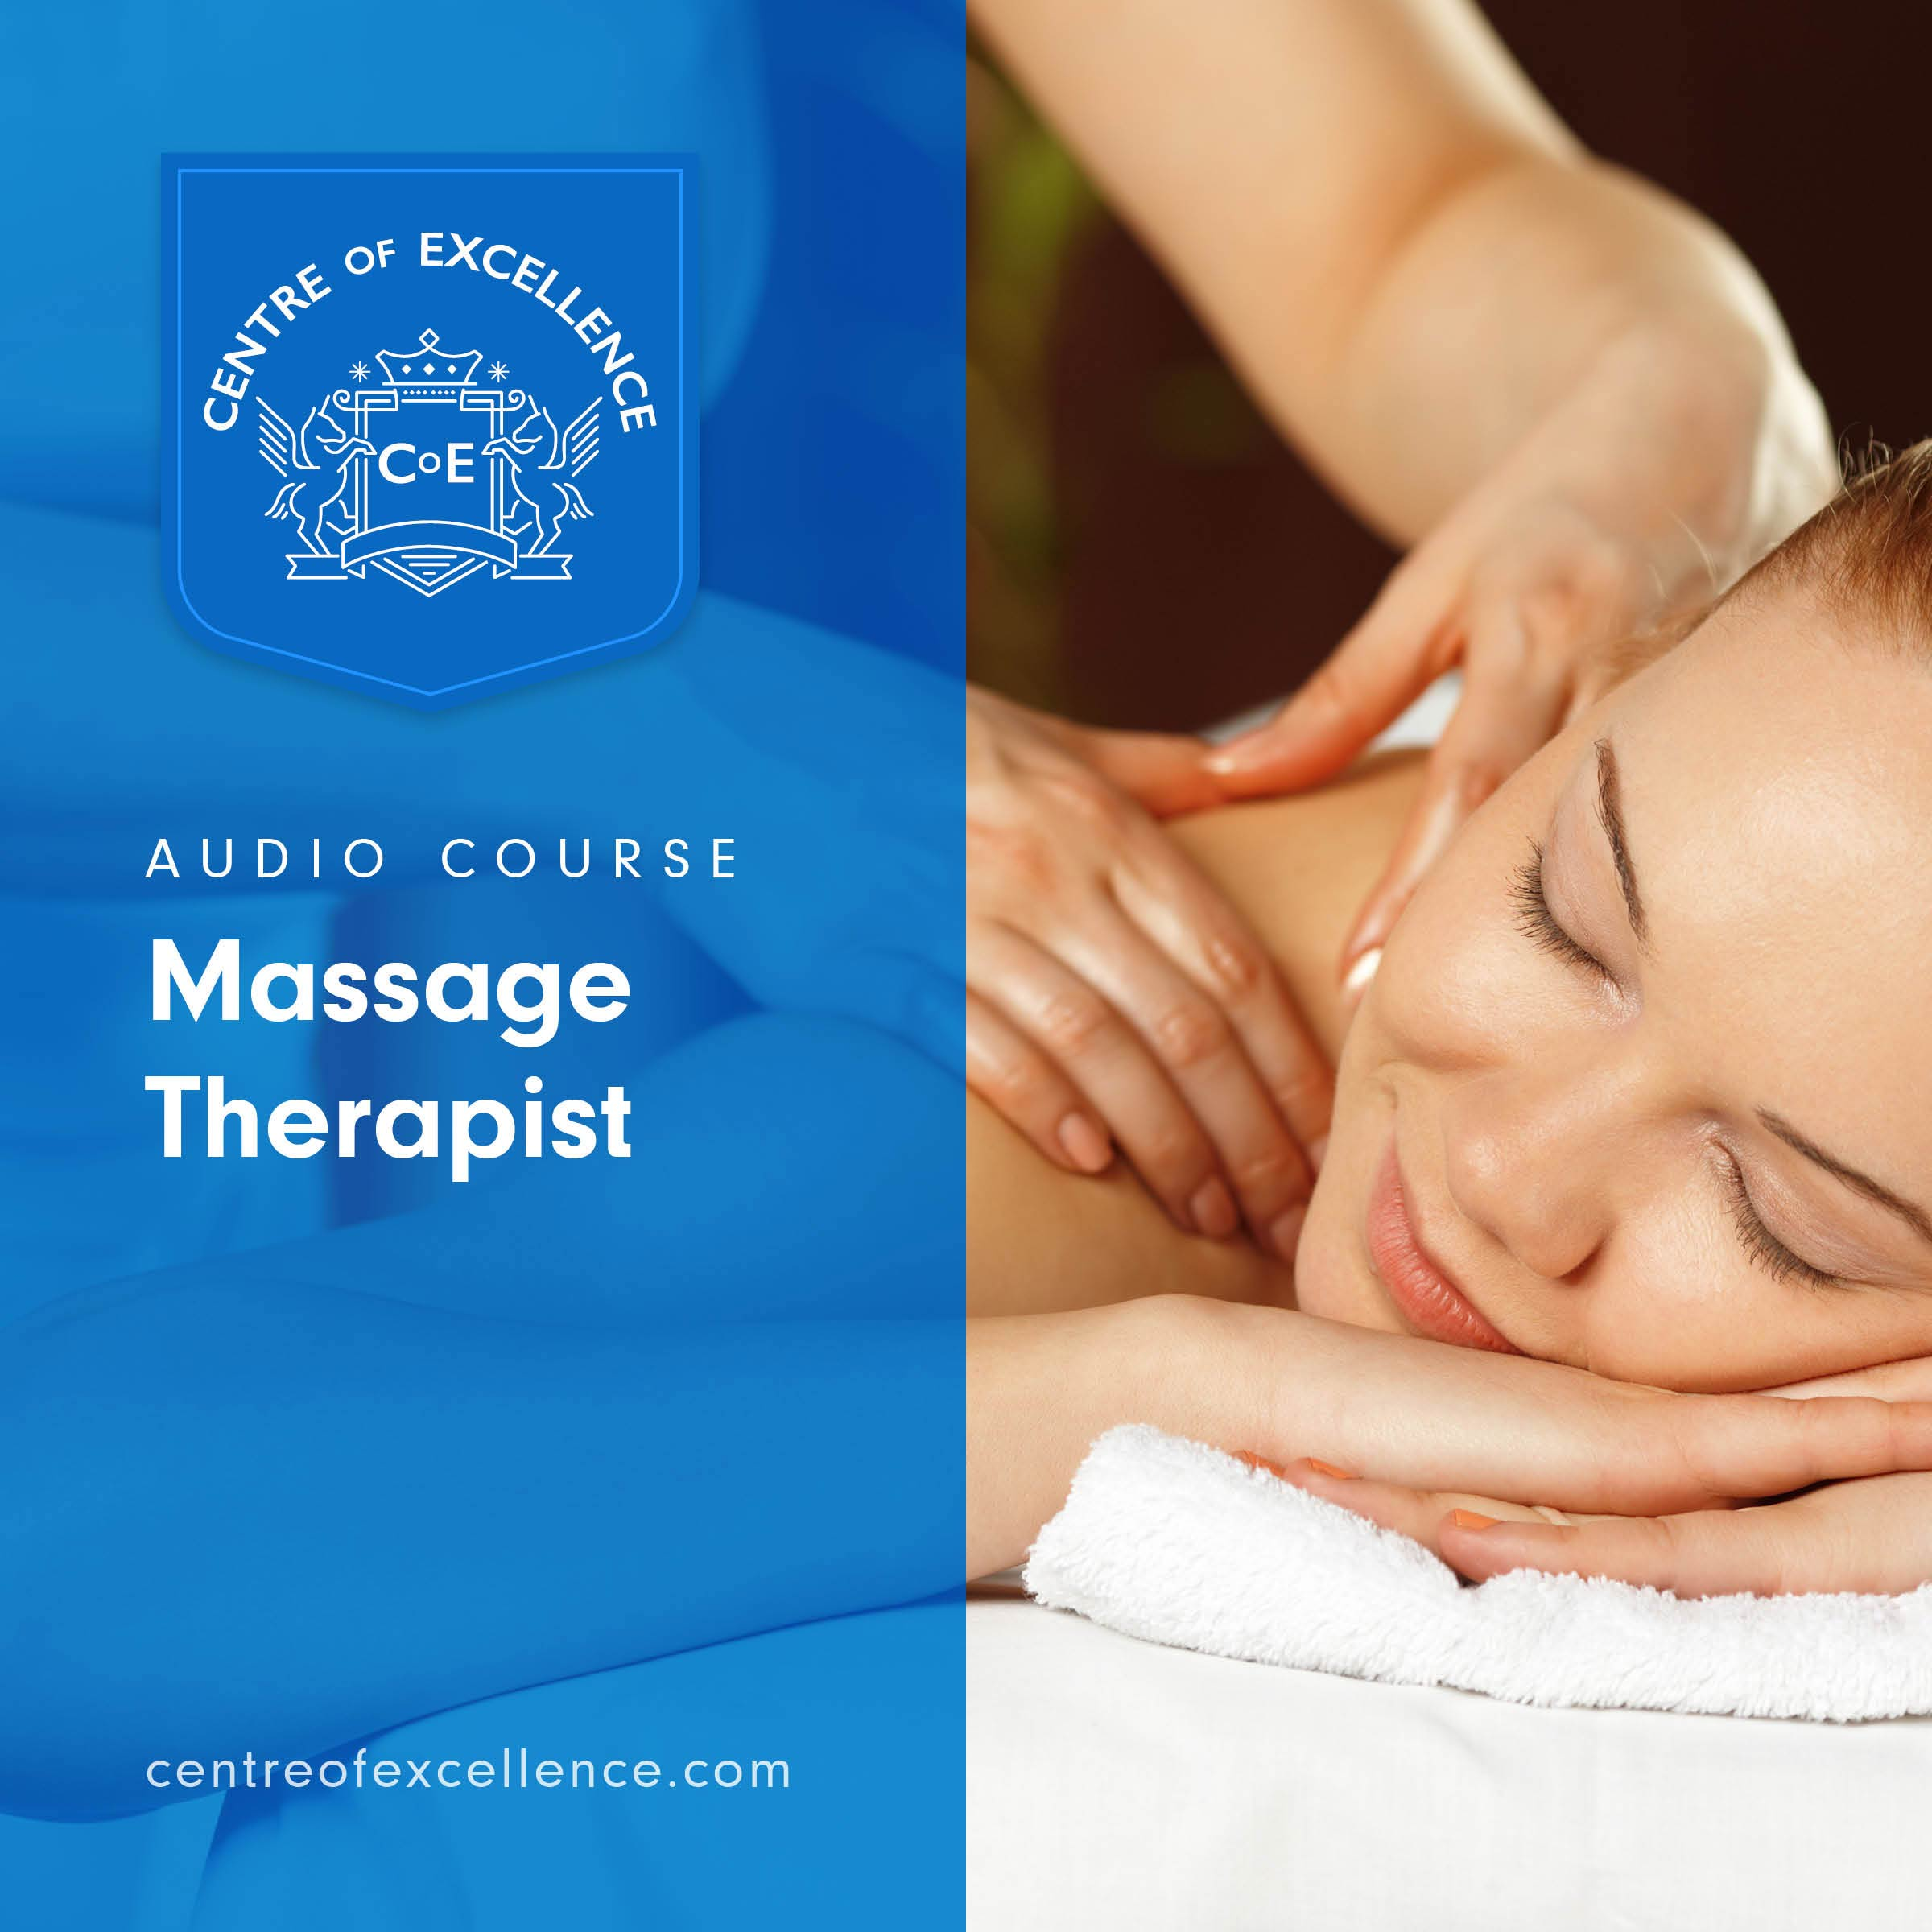 Massage Therapist Audio Course